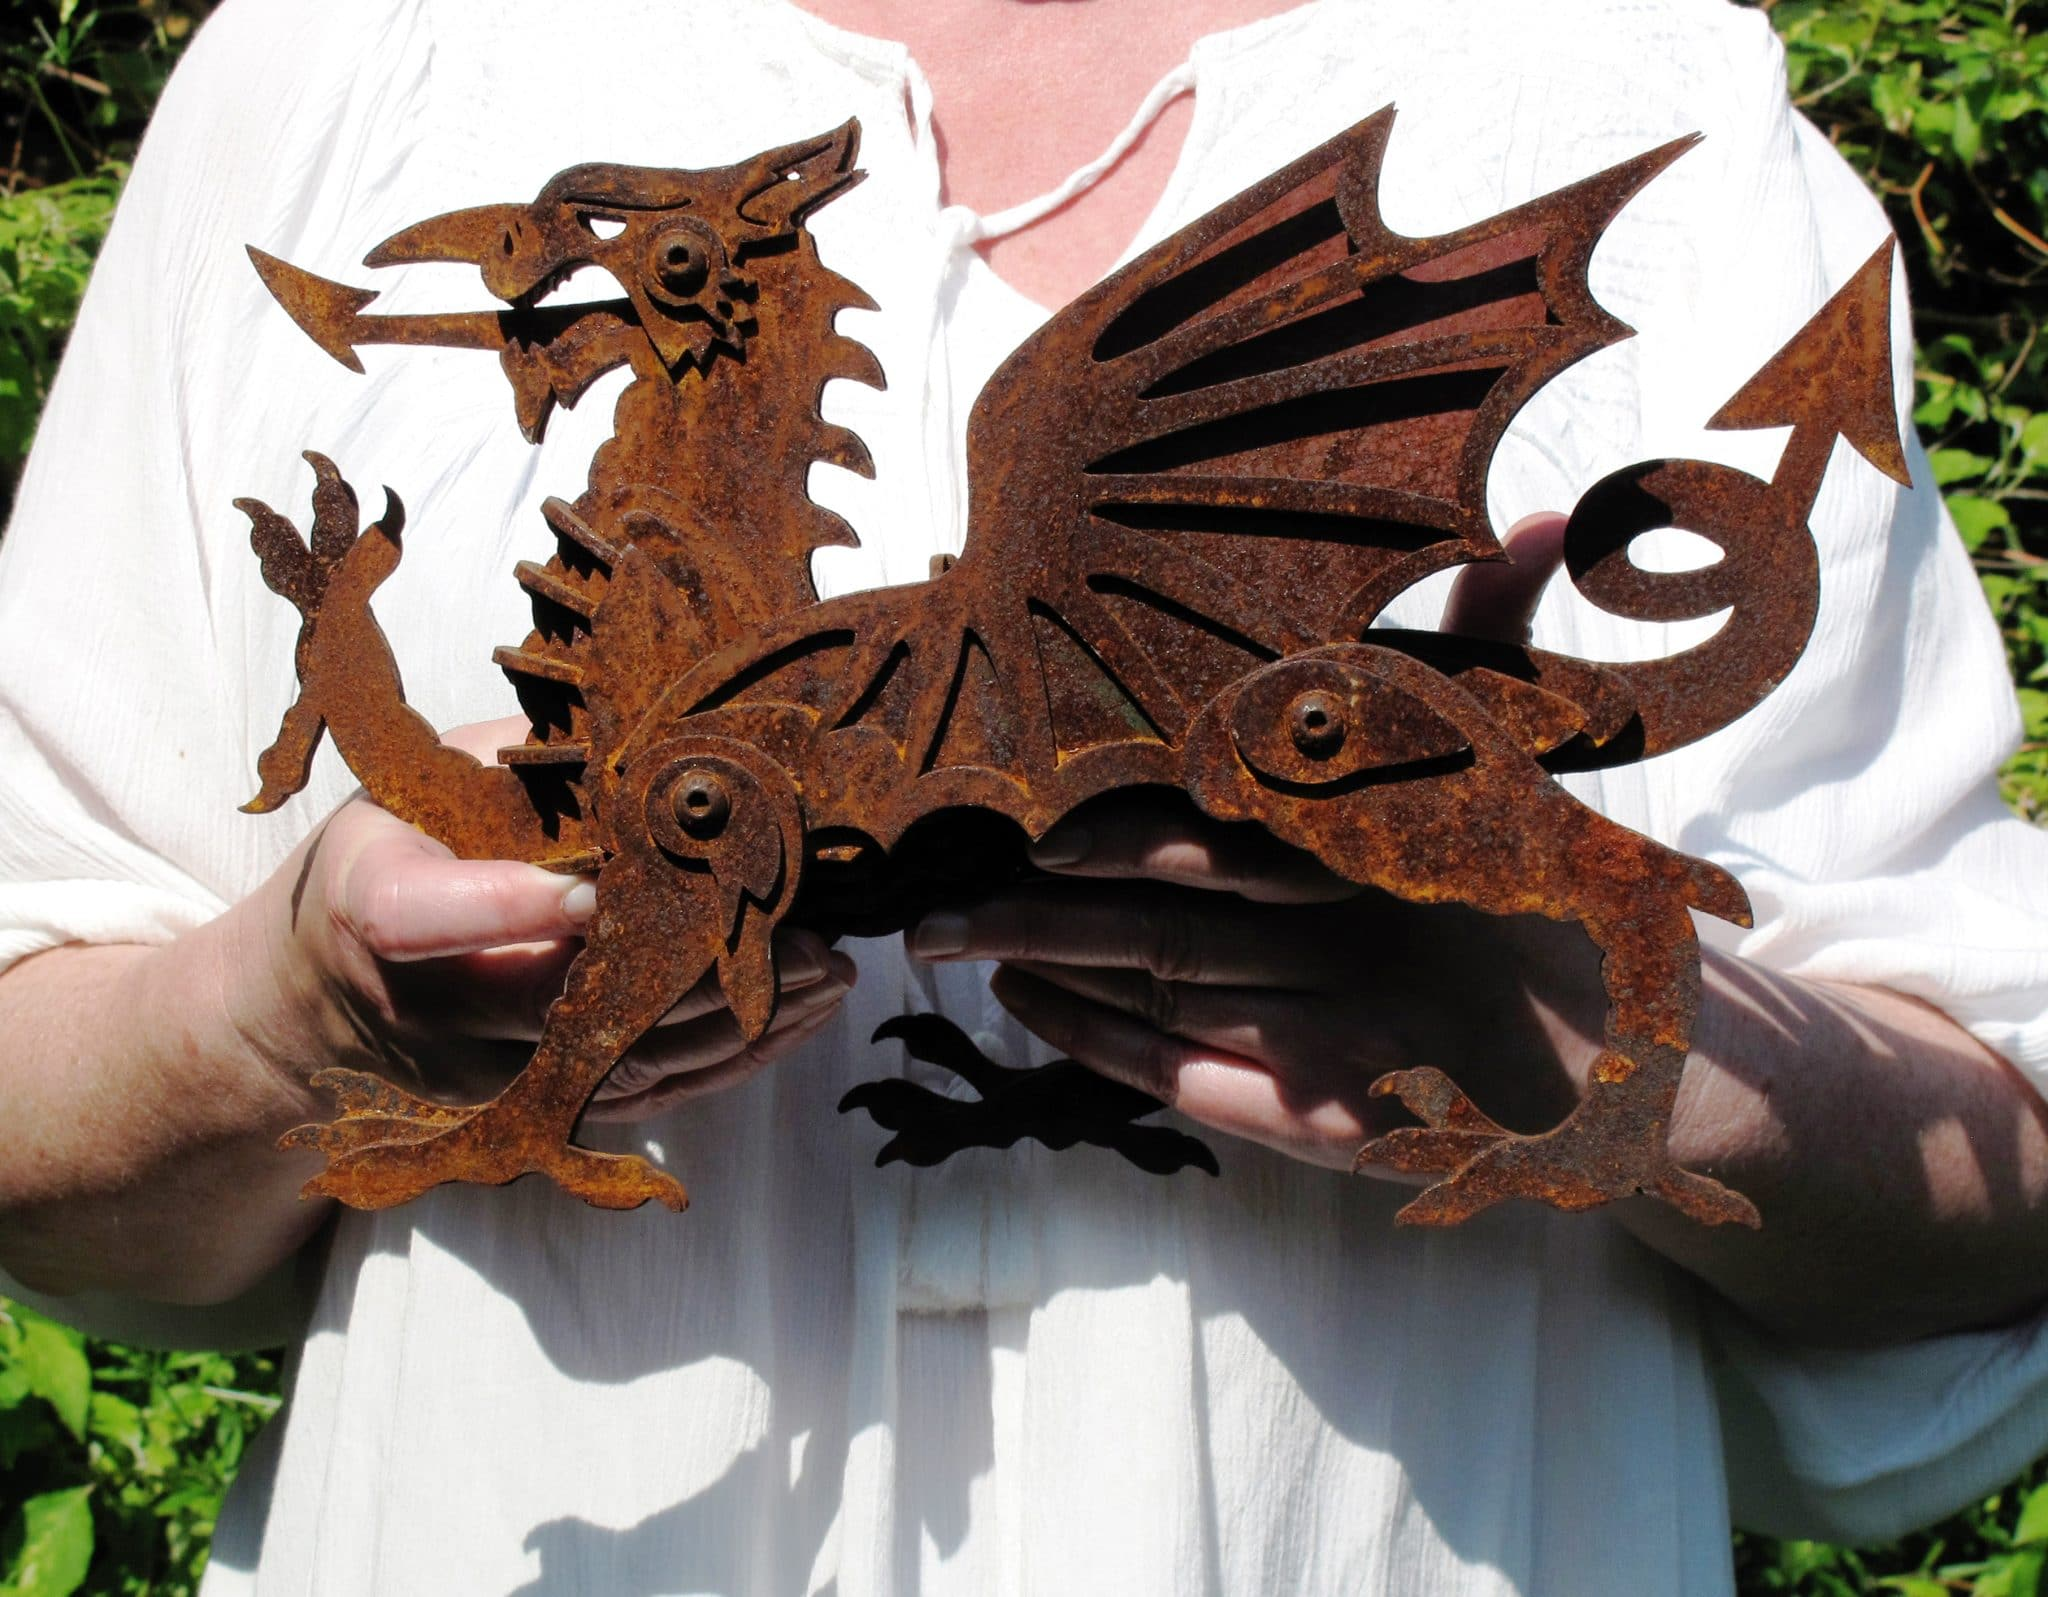 Black Sheep Steel Dragon Sculpture finished with Owatrol Oil